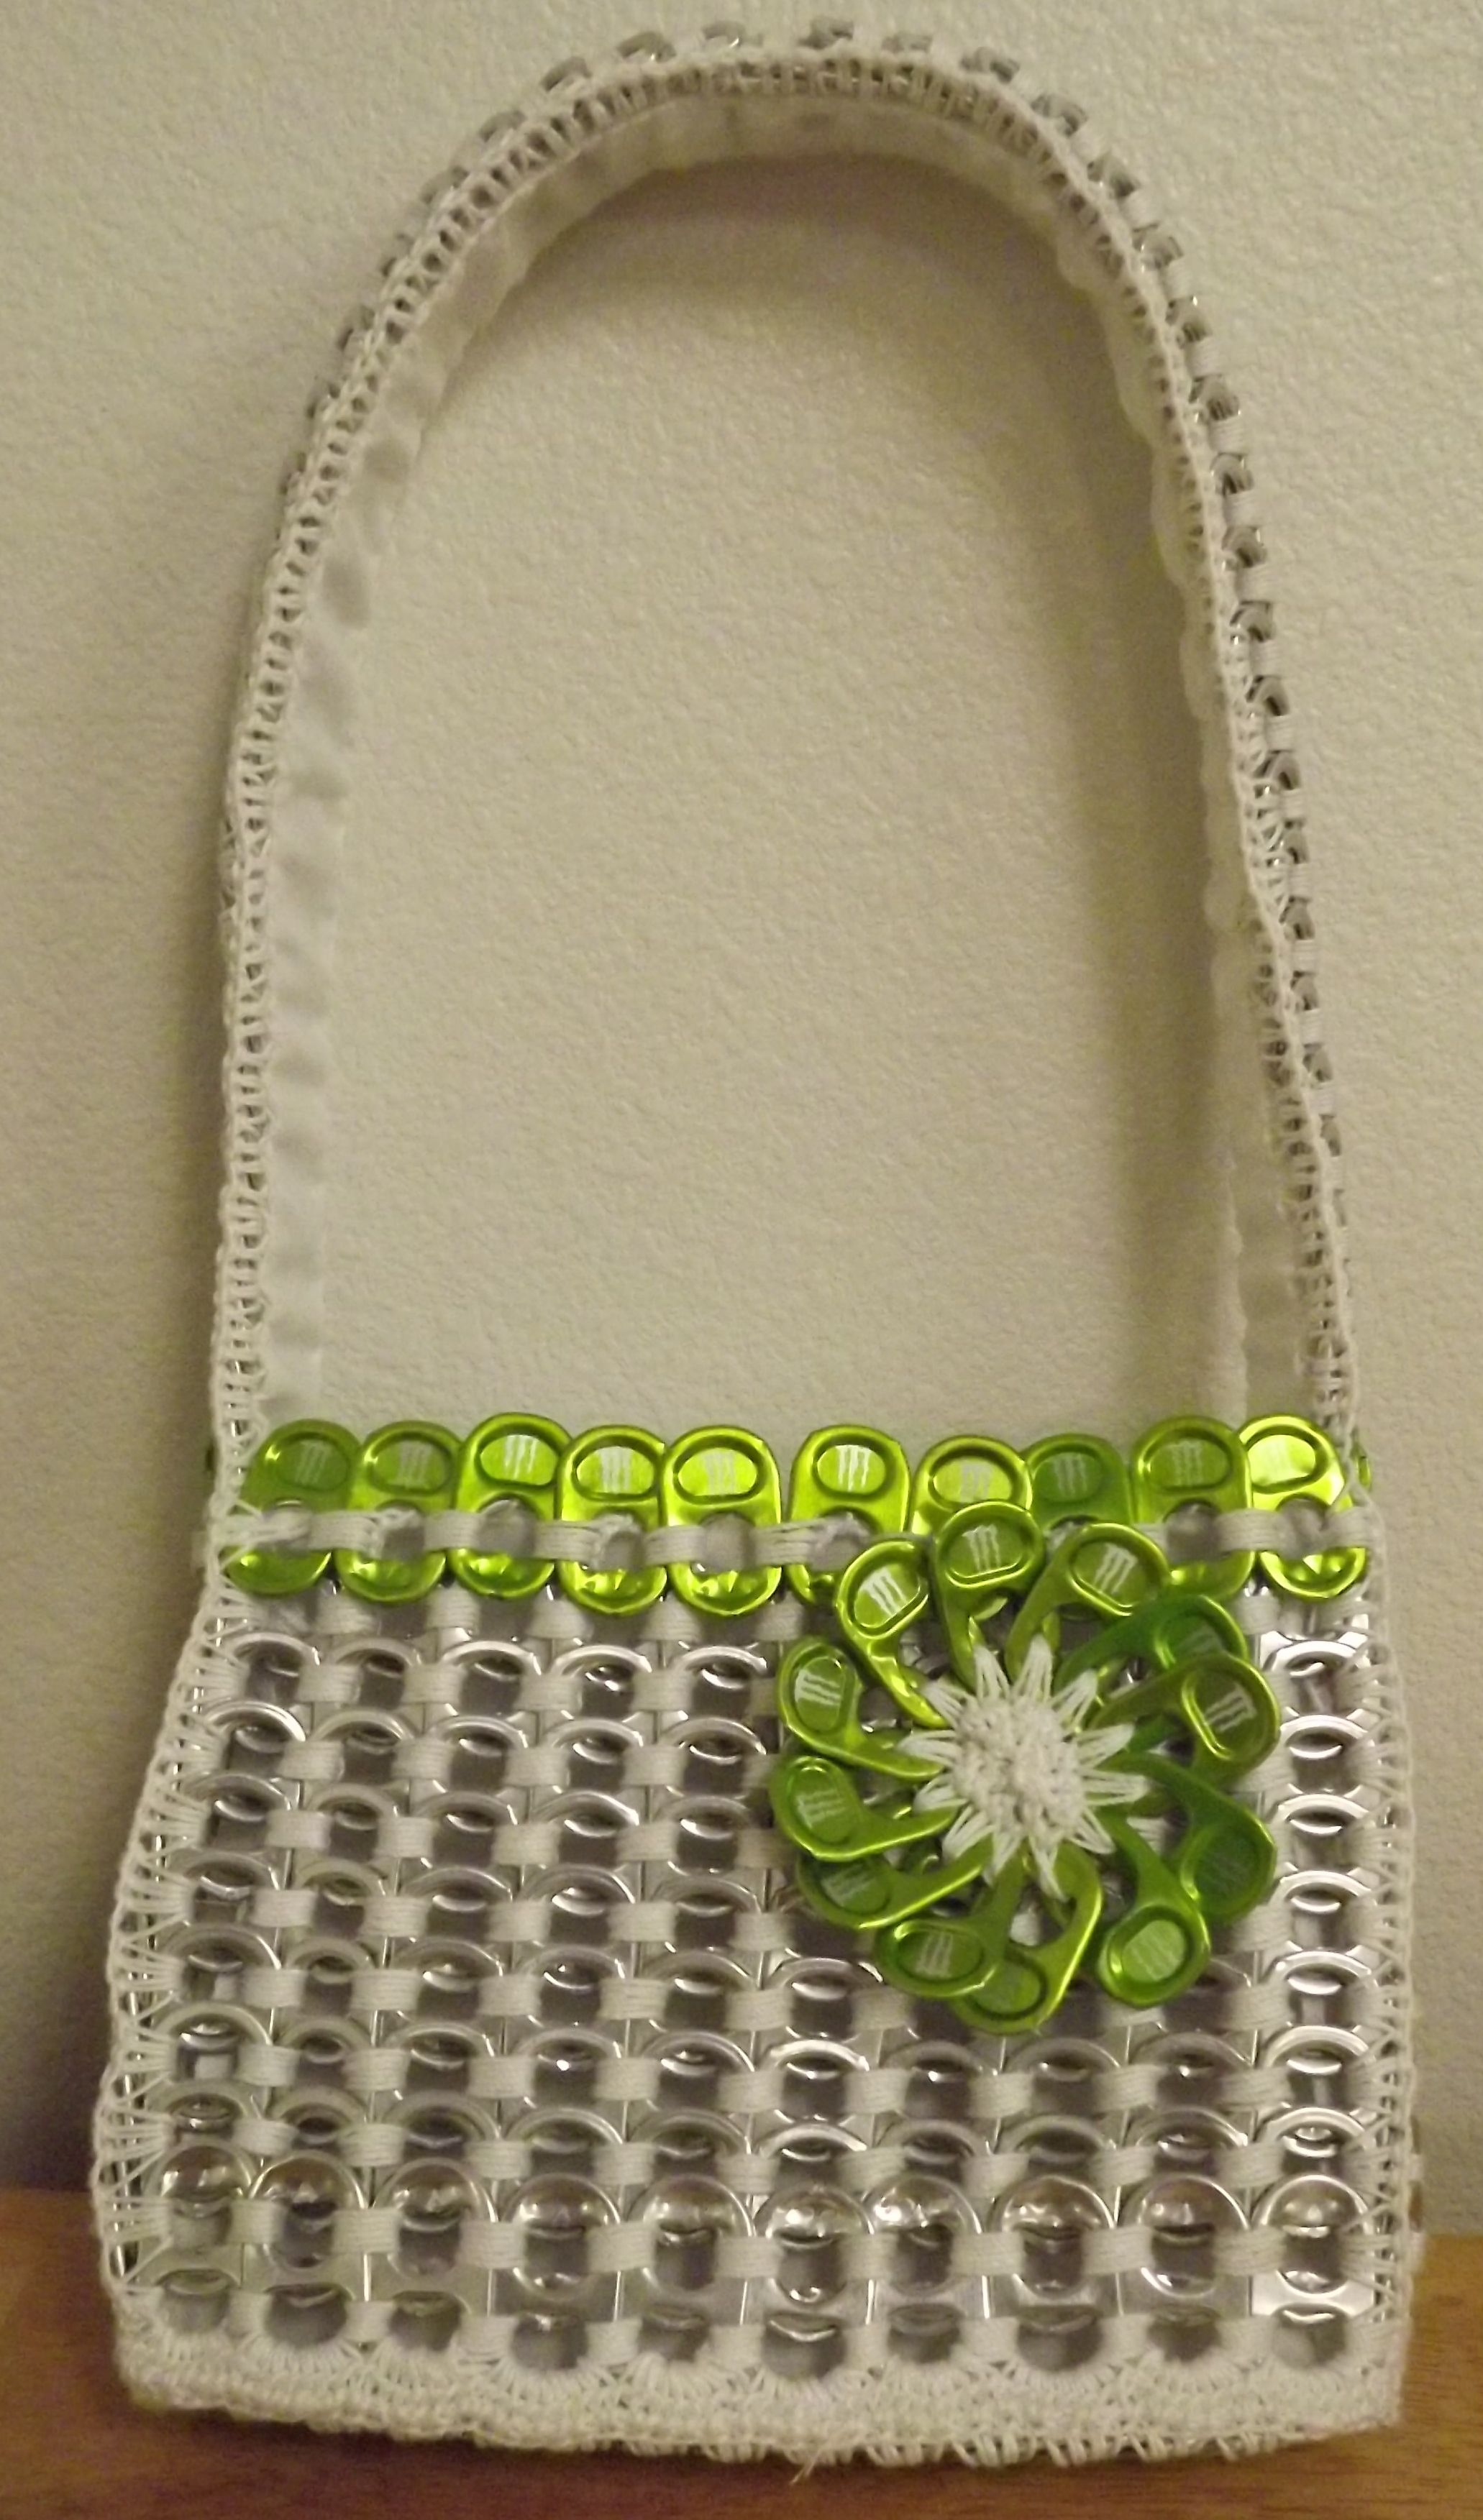 Plastikbeutel Mit Verschluss Small Pop Tab Purse Made With Green Monster Tabs About